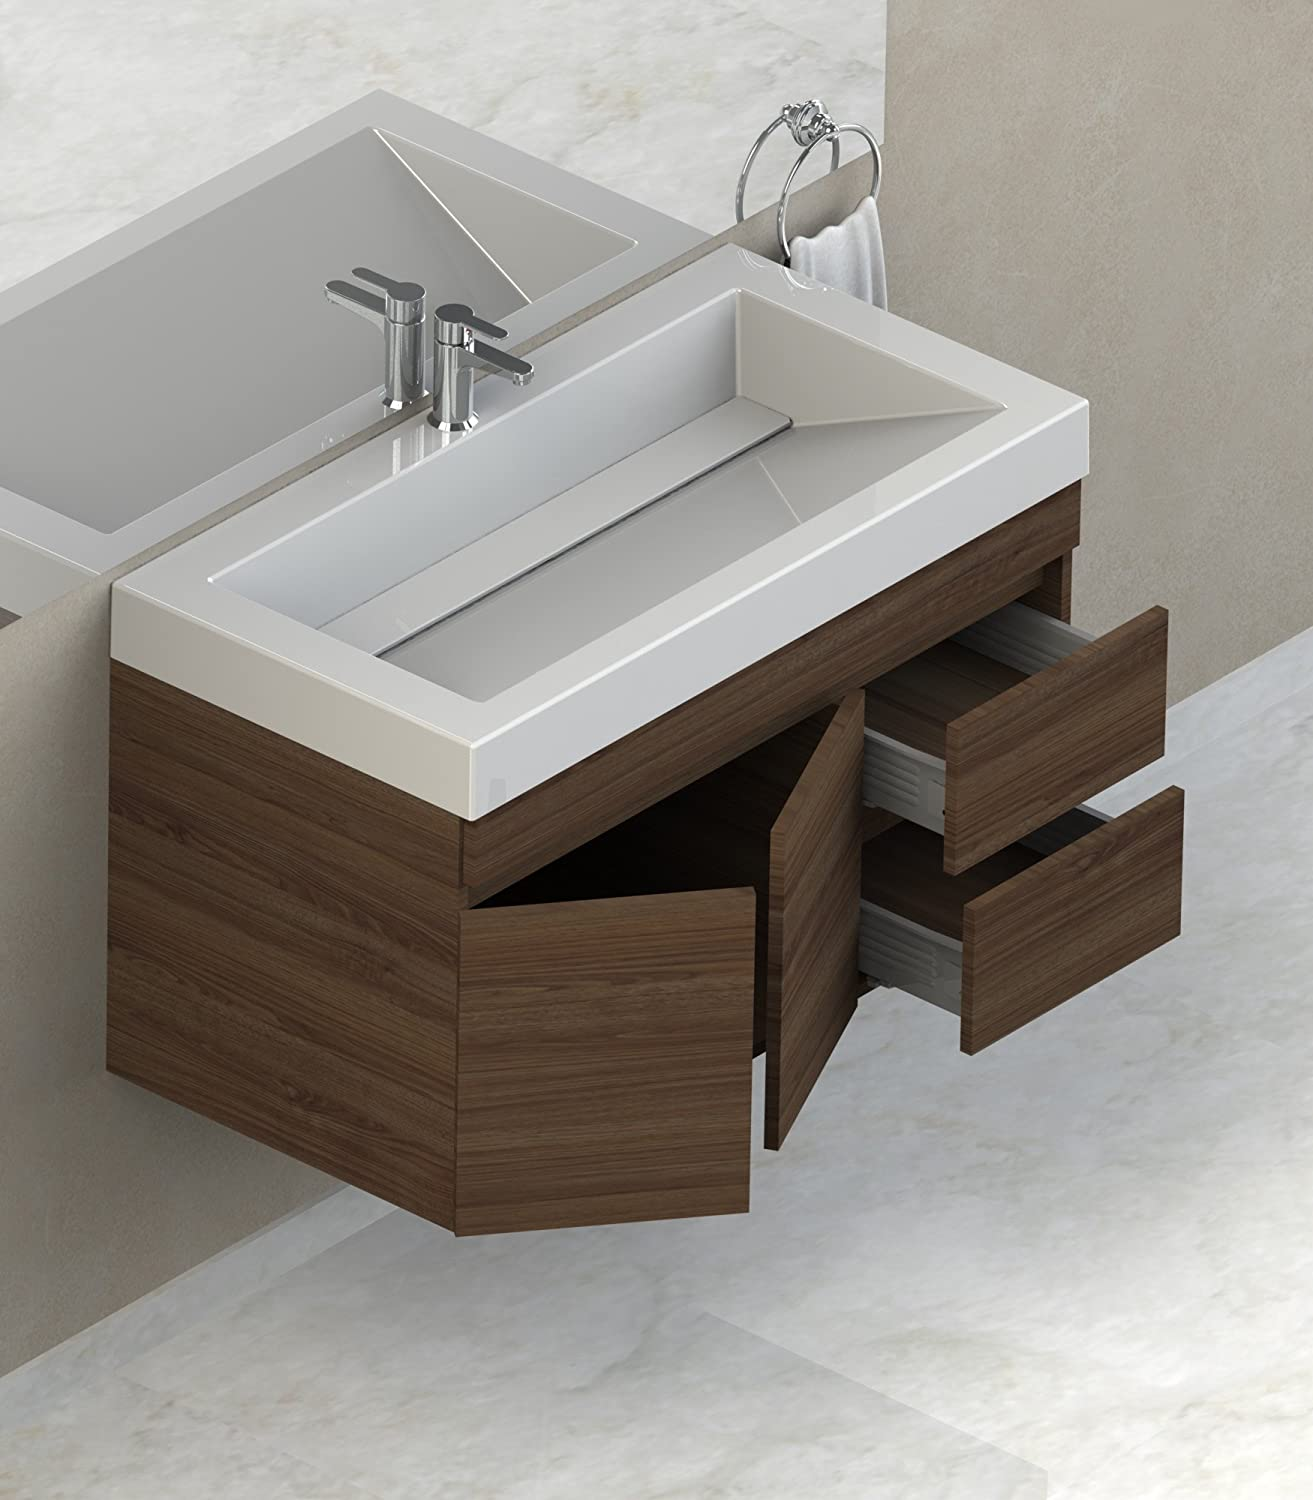 1 L x 1 W Remer Remer TSF2089 Peleo Pressure Balance Tub and Shower Faucet